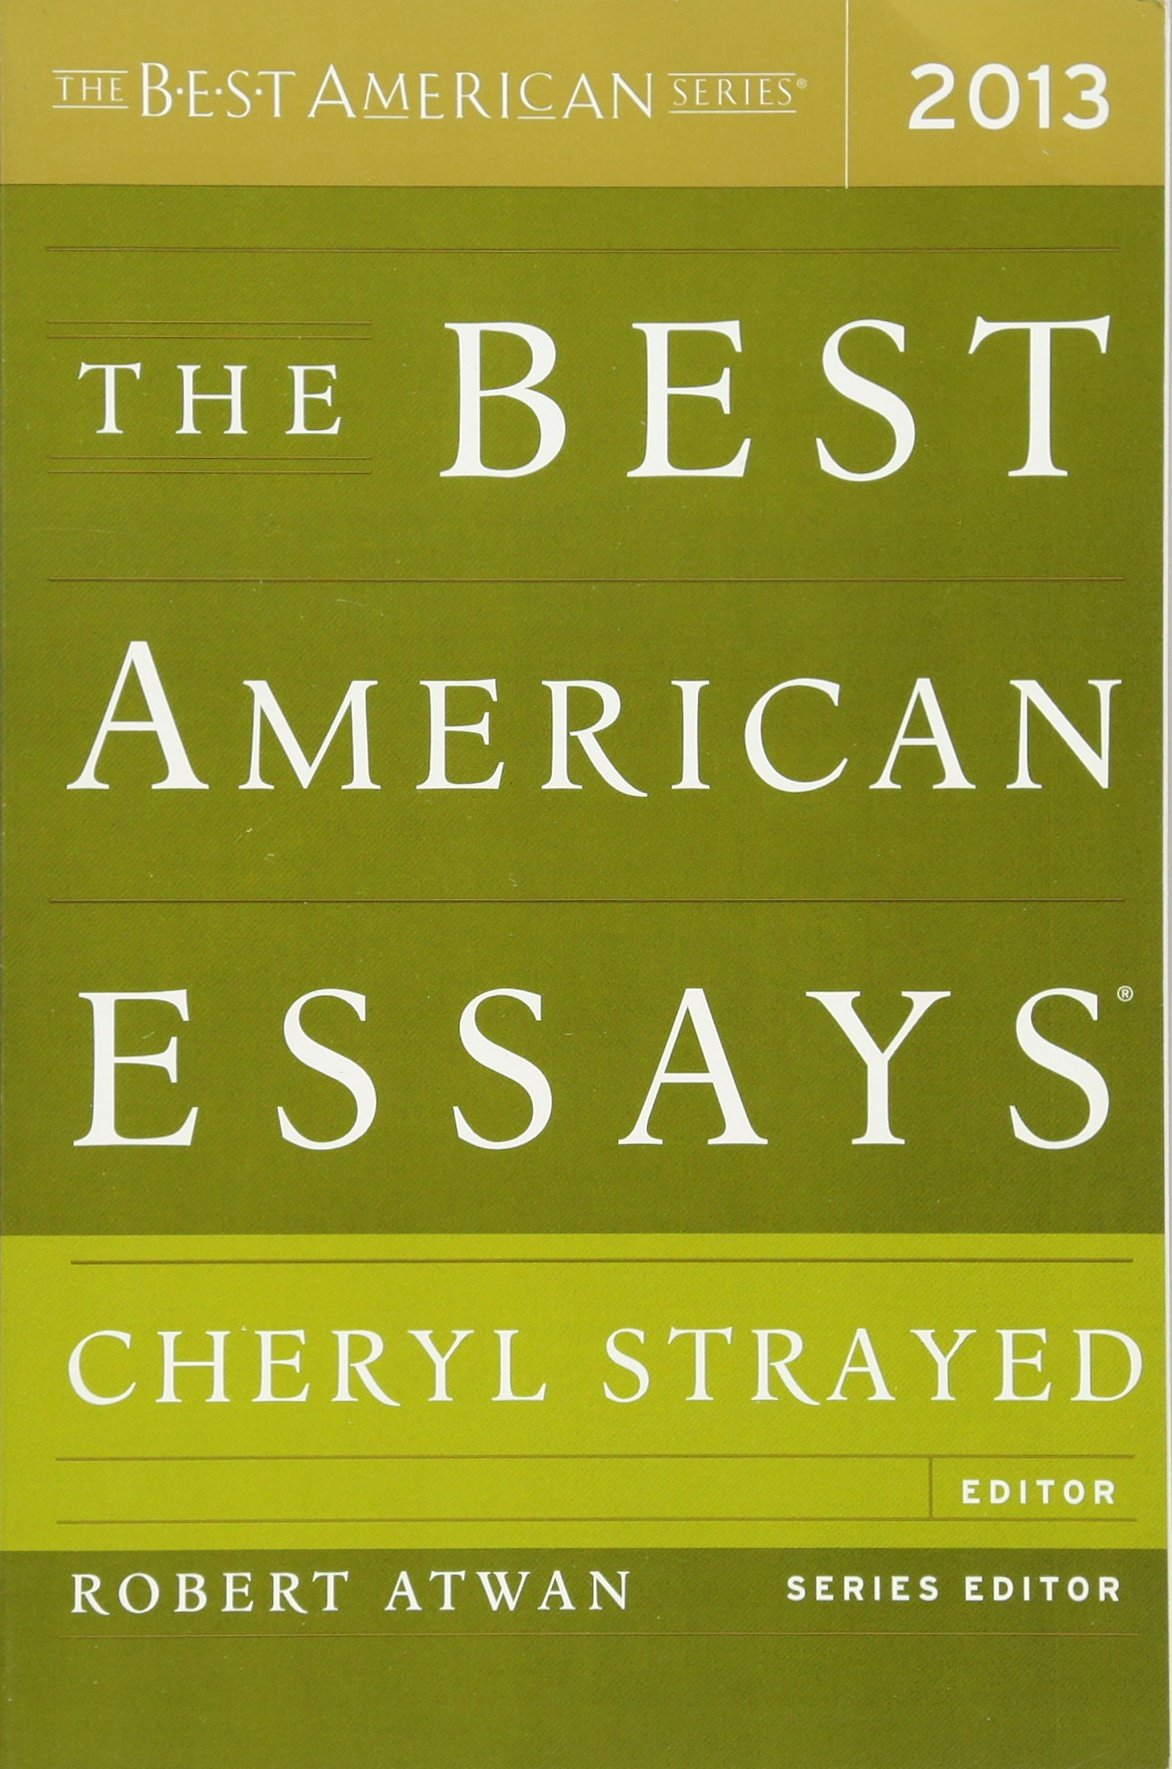 002 Essay Example 81nkls2j9vl Best American Striking Essays 2017 Pdf Submissions 2019 Of The Century Table Contents Full